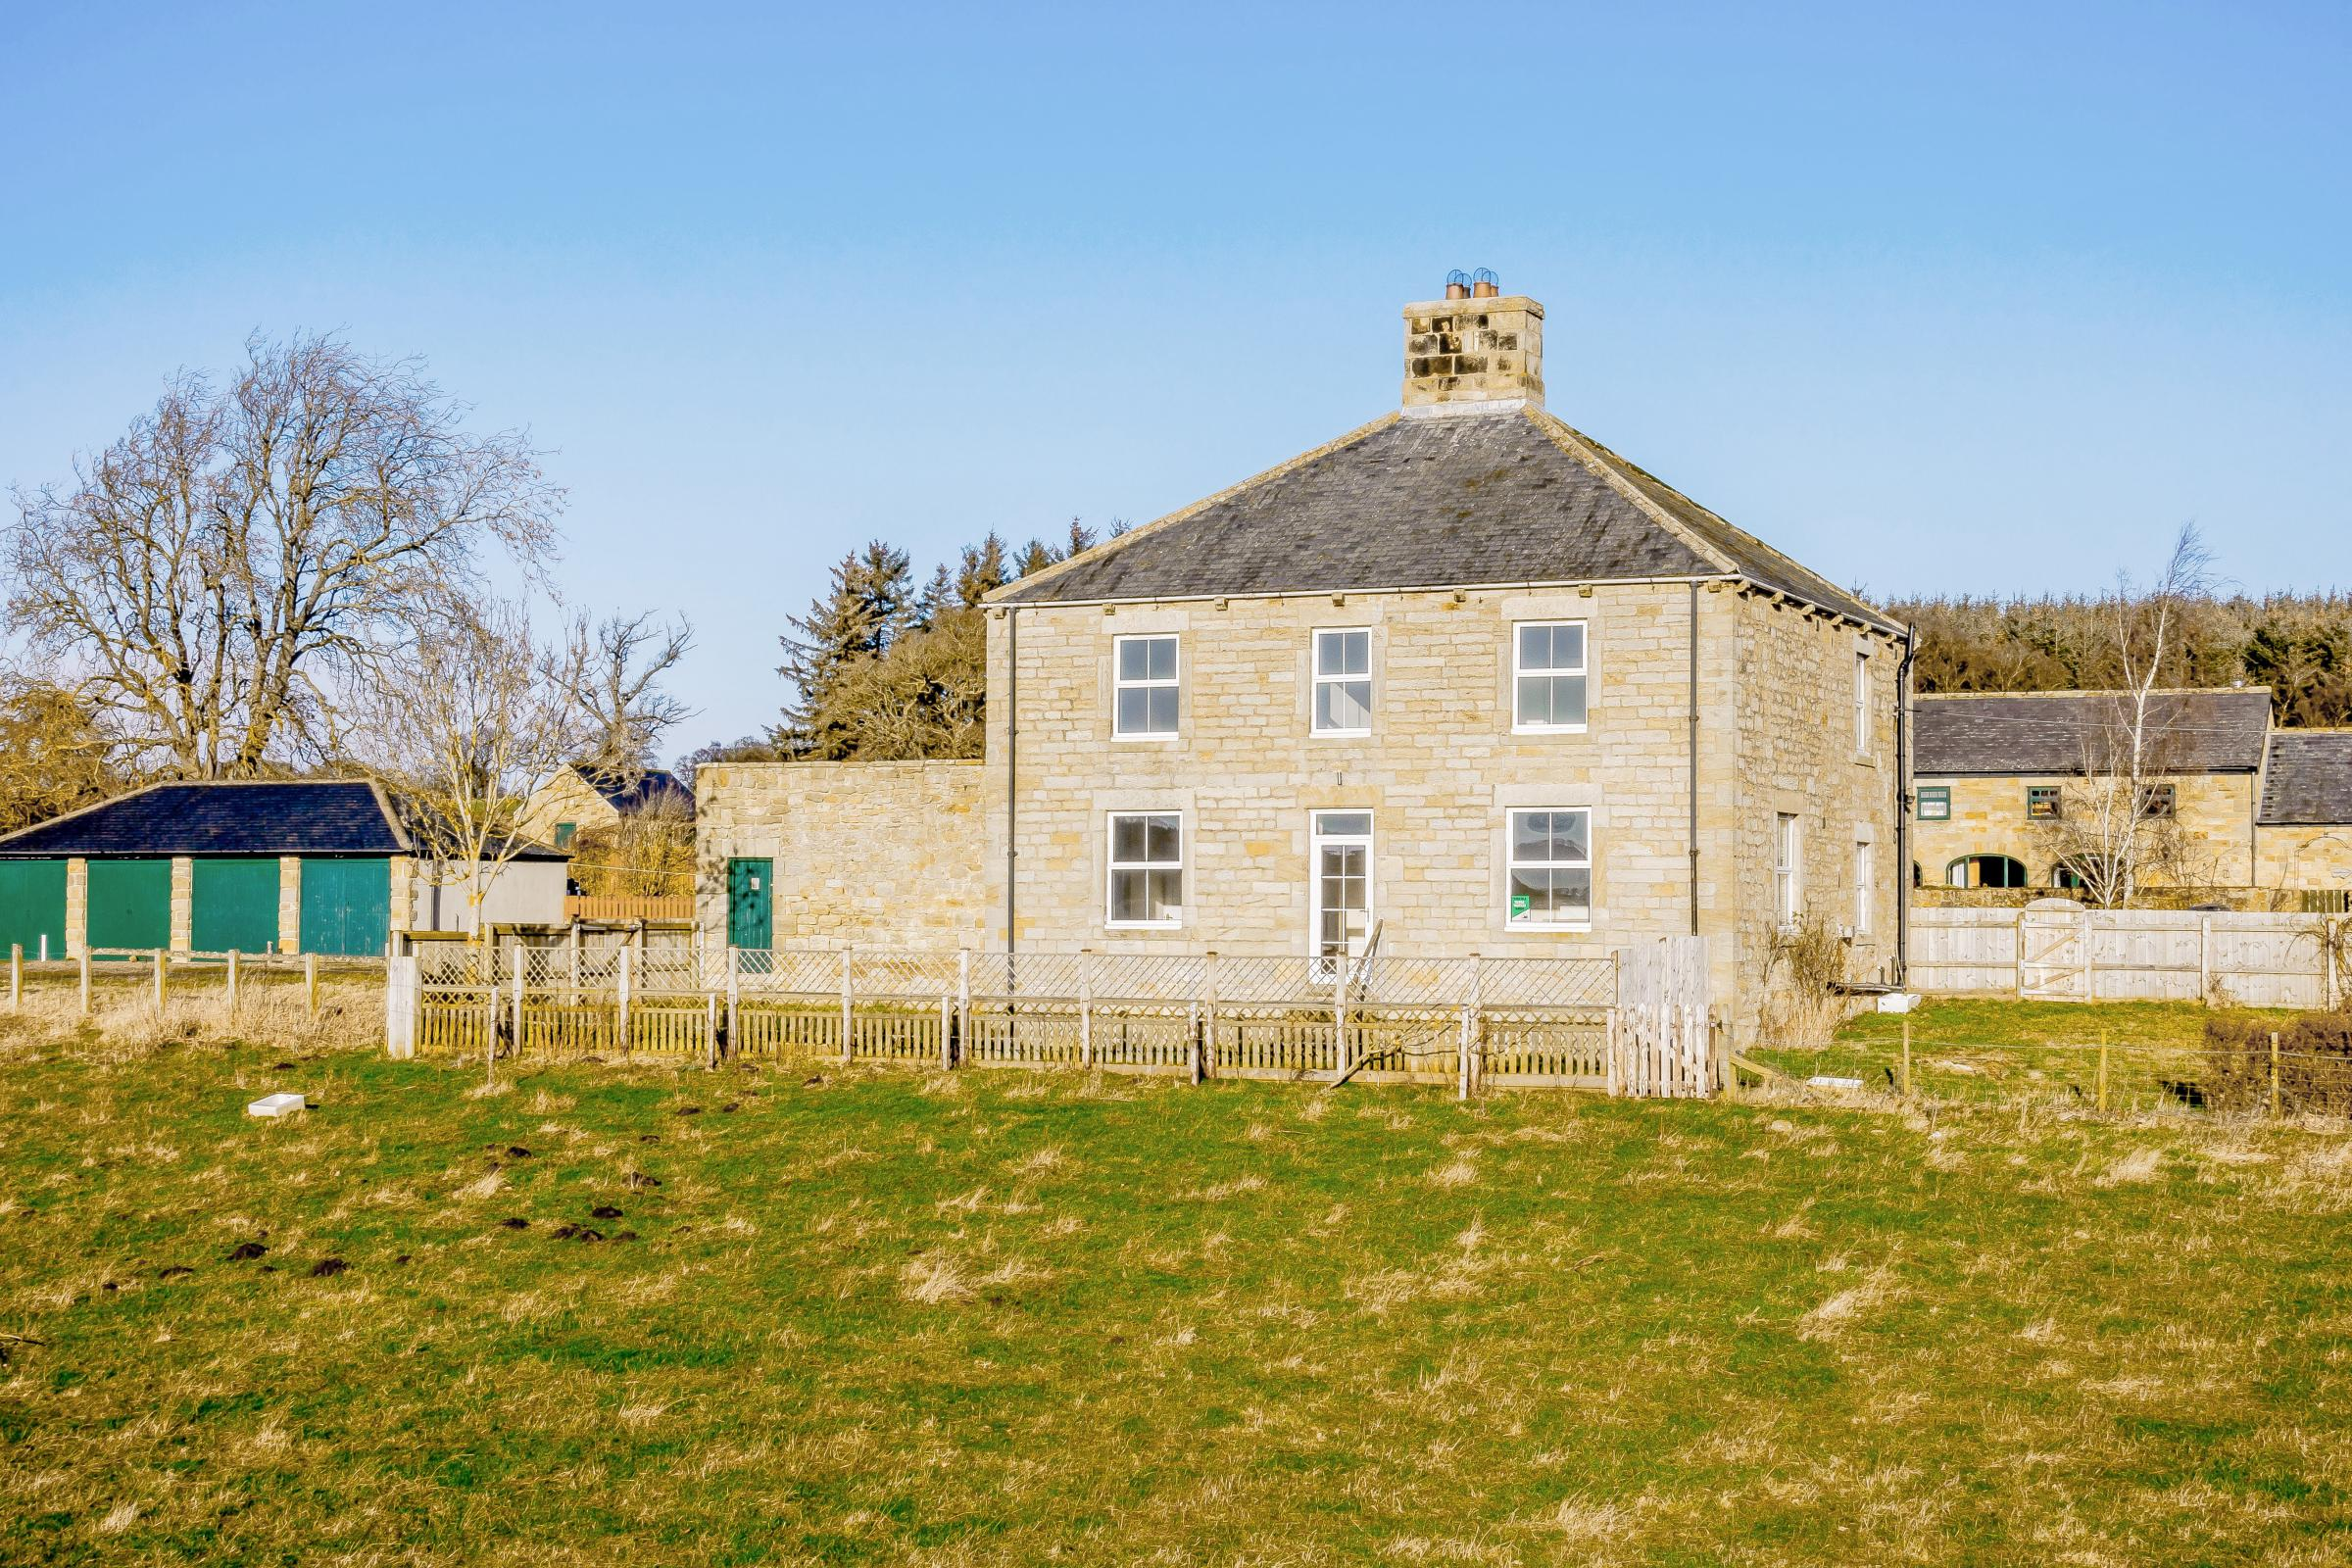 Gallowshaw Farmhouse has original details enhanced with a modern makeover and glorious views from almost every window